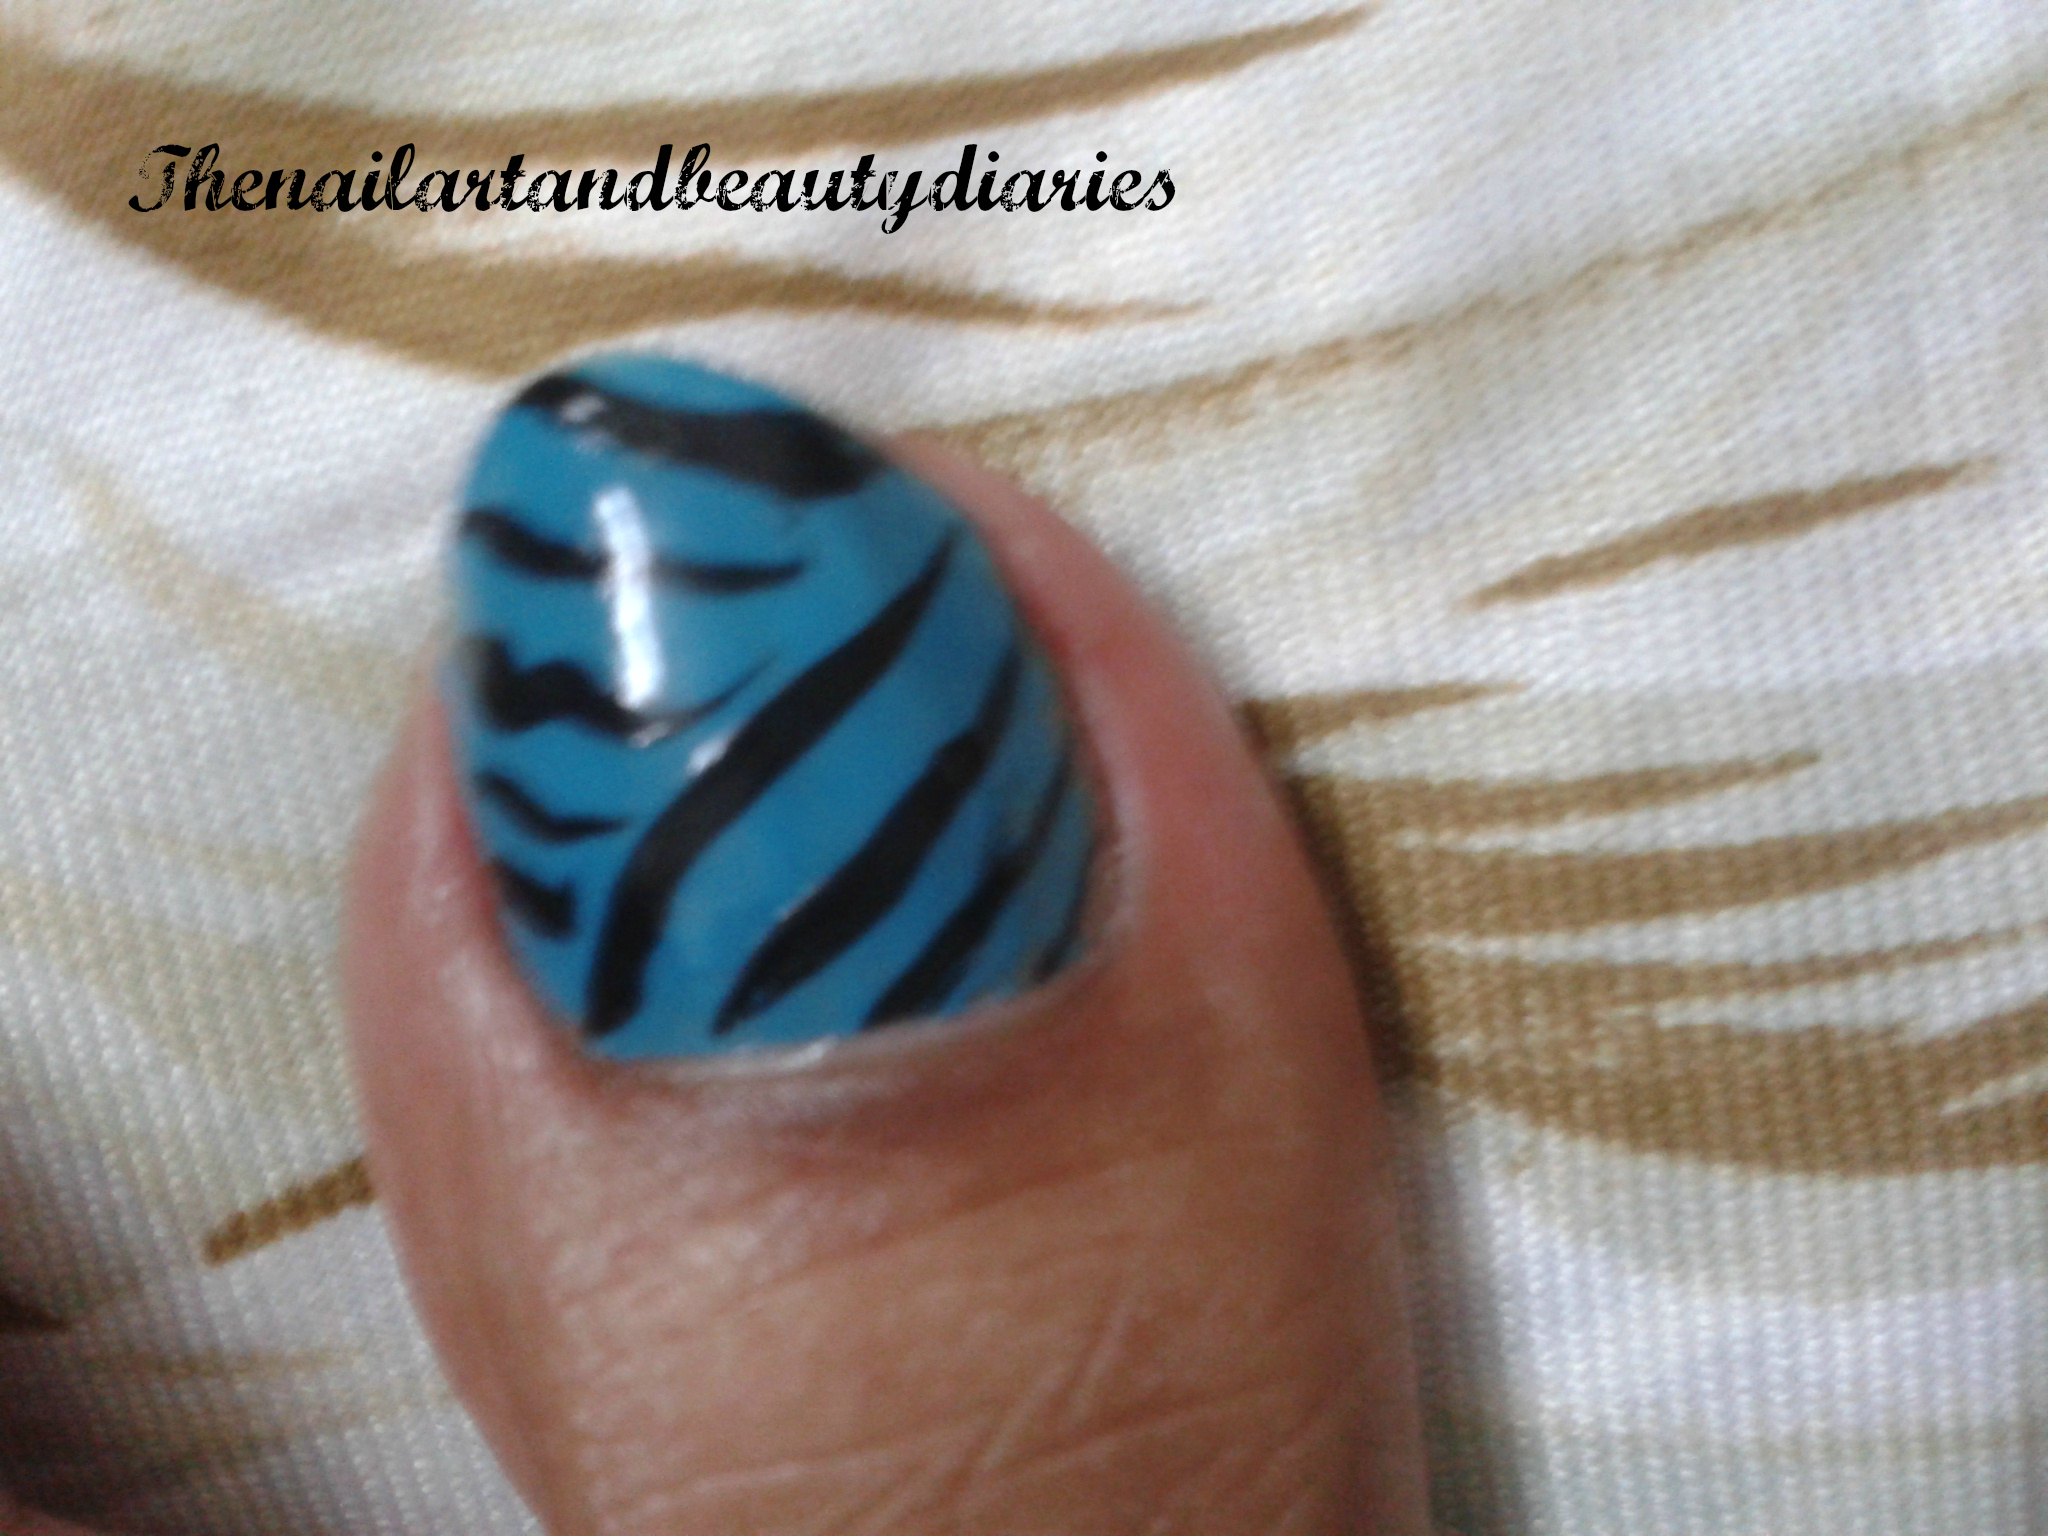 Easy at Home Nail Art 11 – Zebra Nail Art for Foot | The Nail Art ...